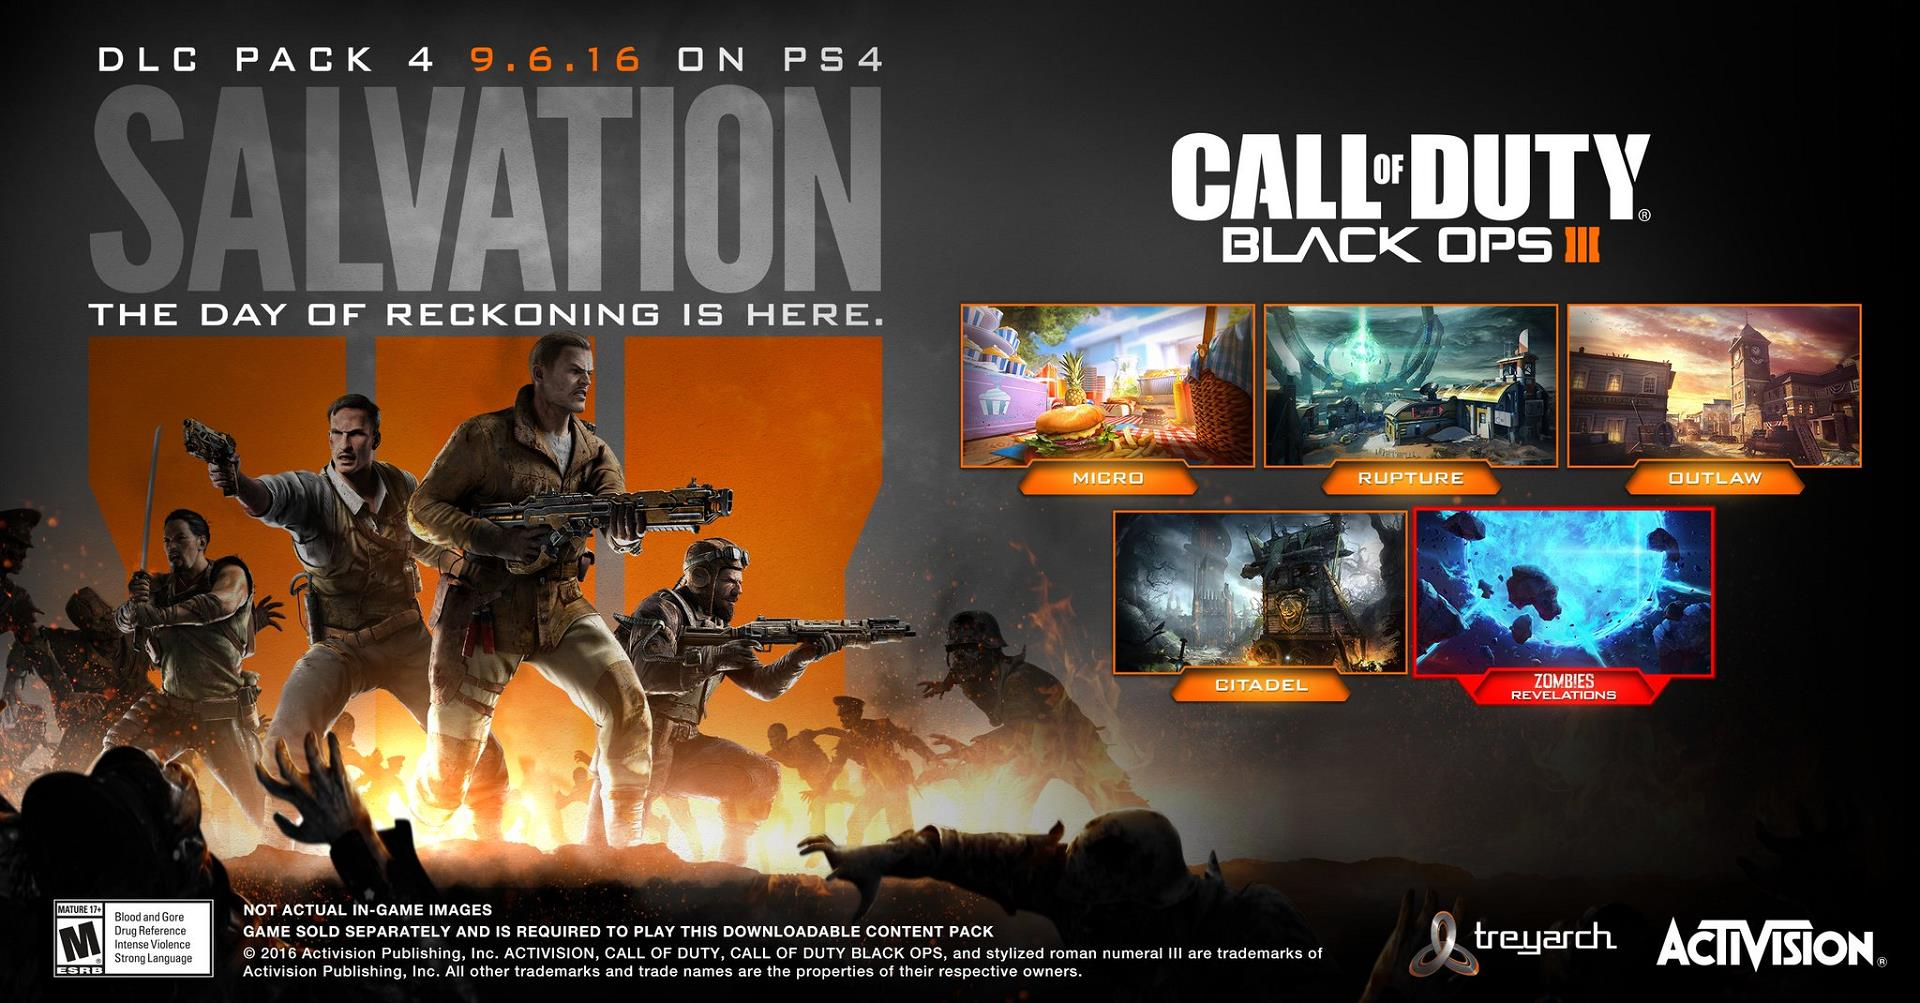 Call Of Duty Black Ops 3s Final DLC Salvation Releases On Xbox One And PC This Week